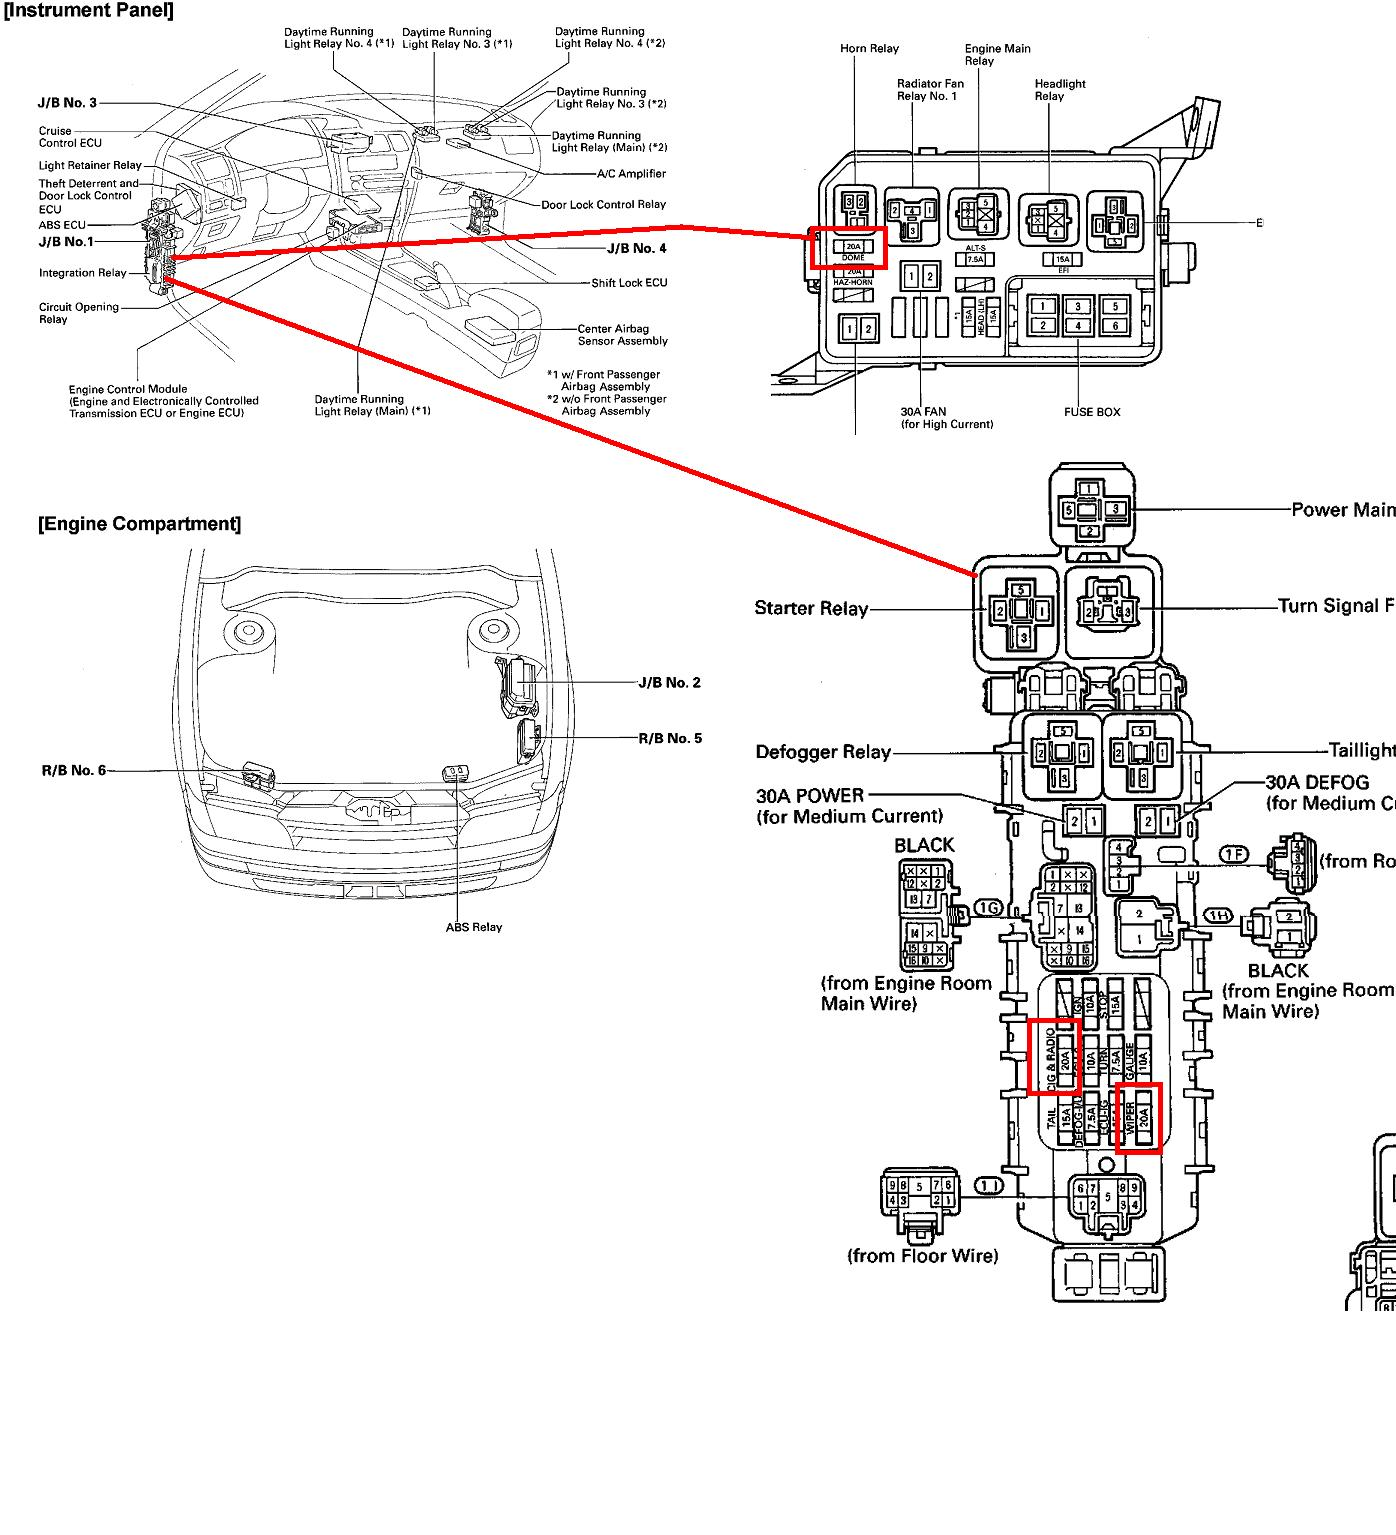 Wiring Toyota Corolla Electrical Wiring Diagram Ignition Wiring Heater Speed Control